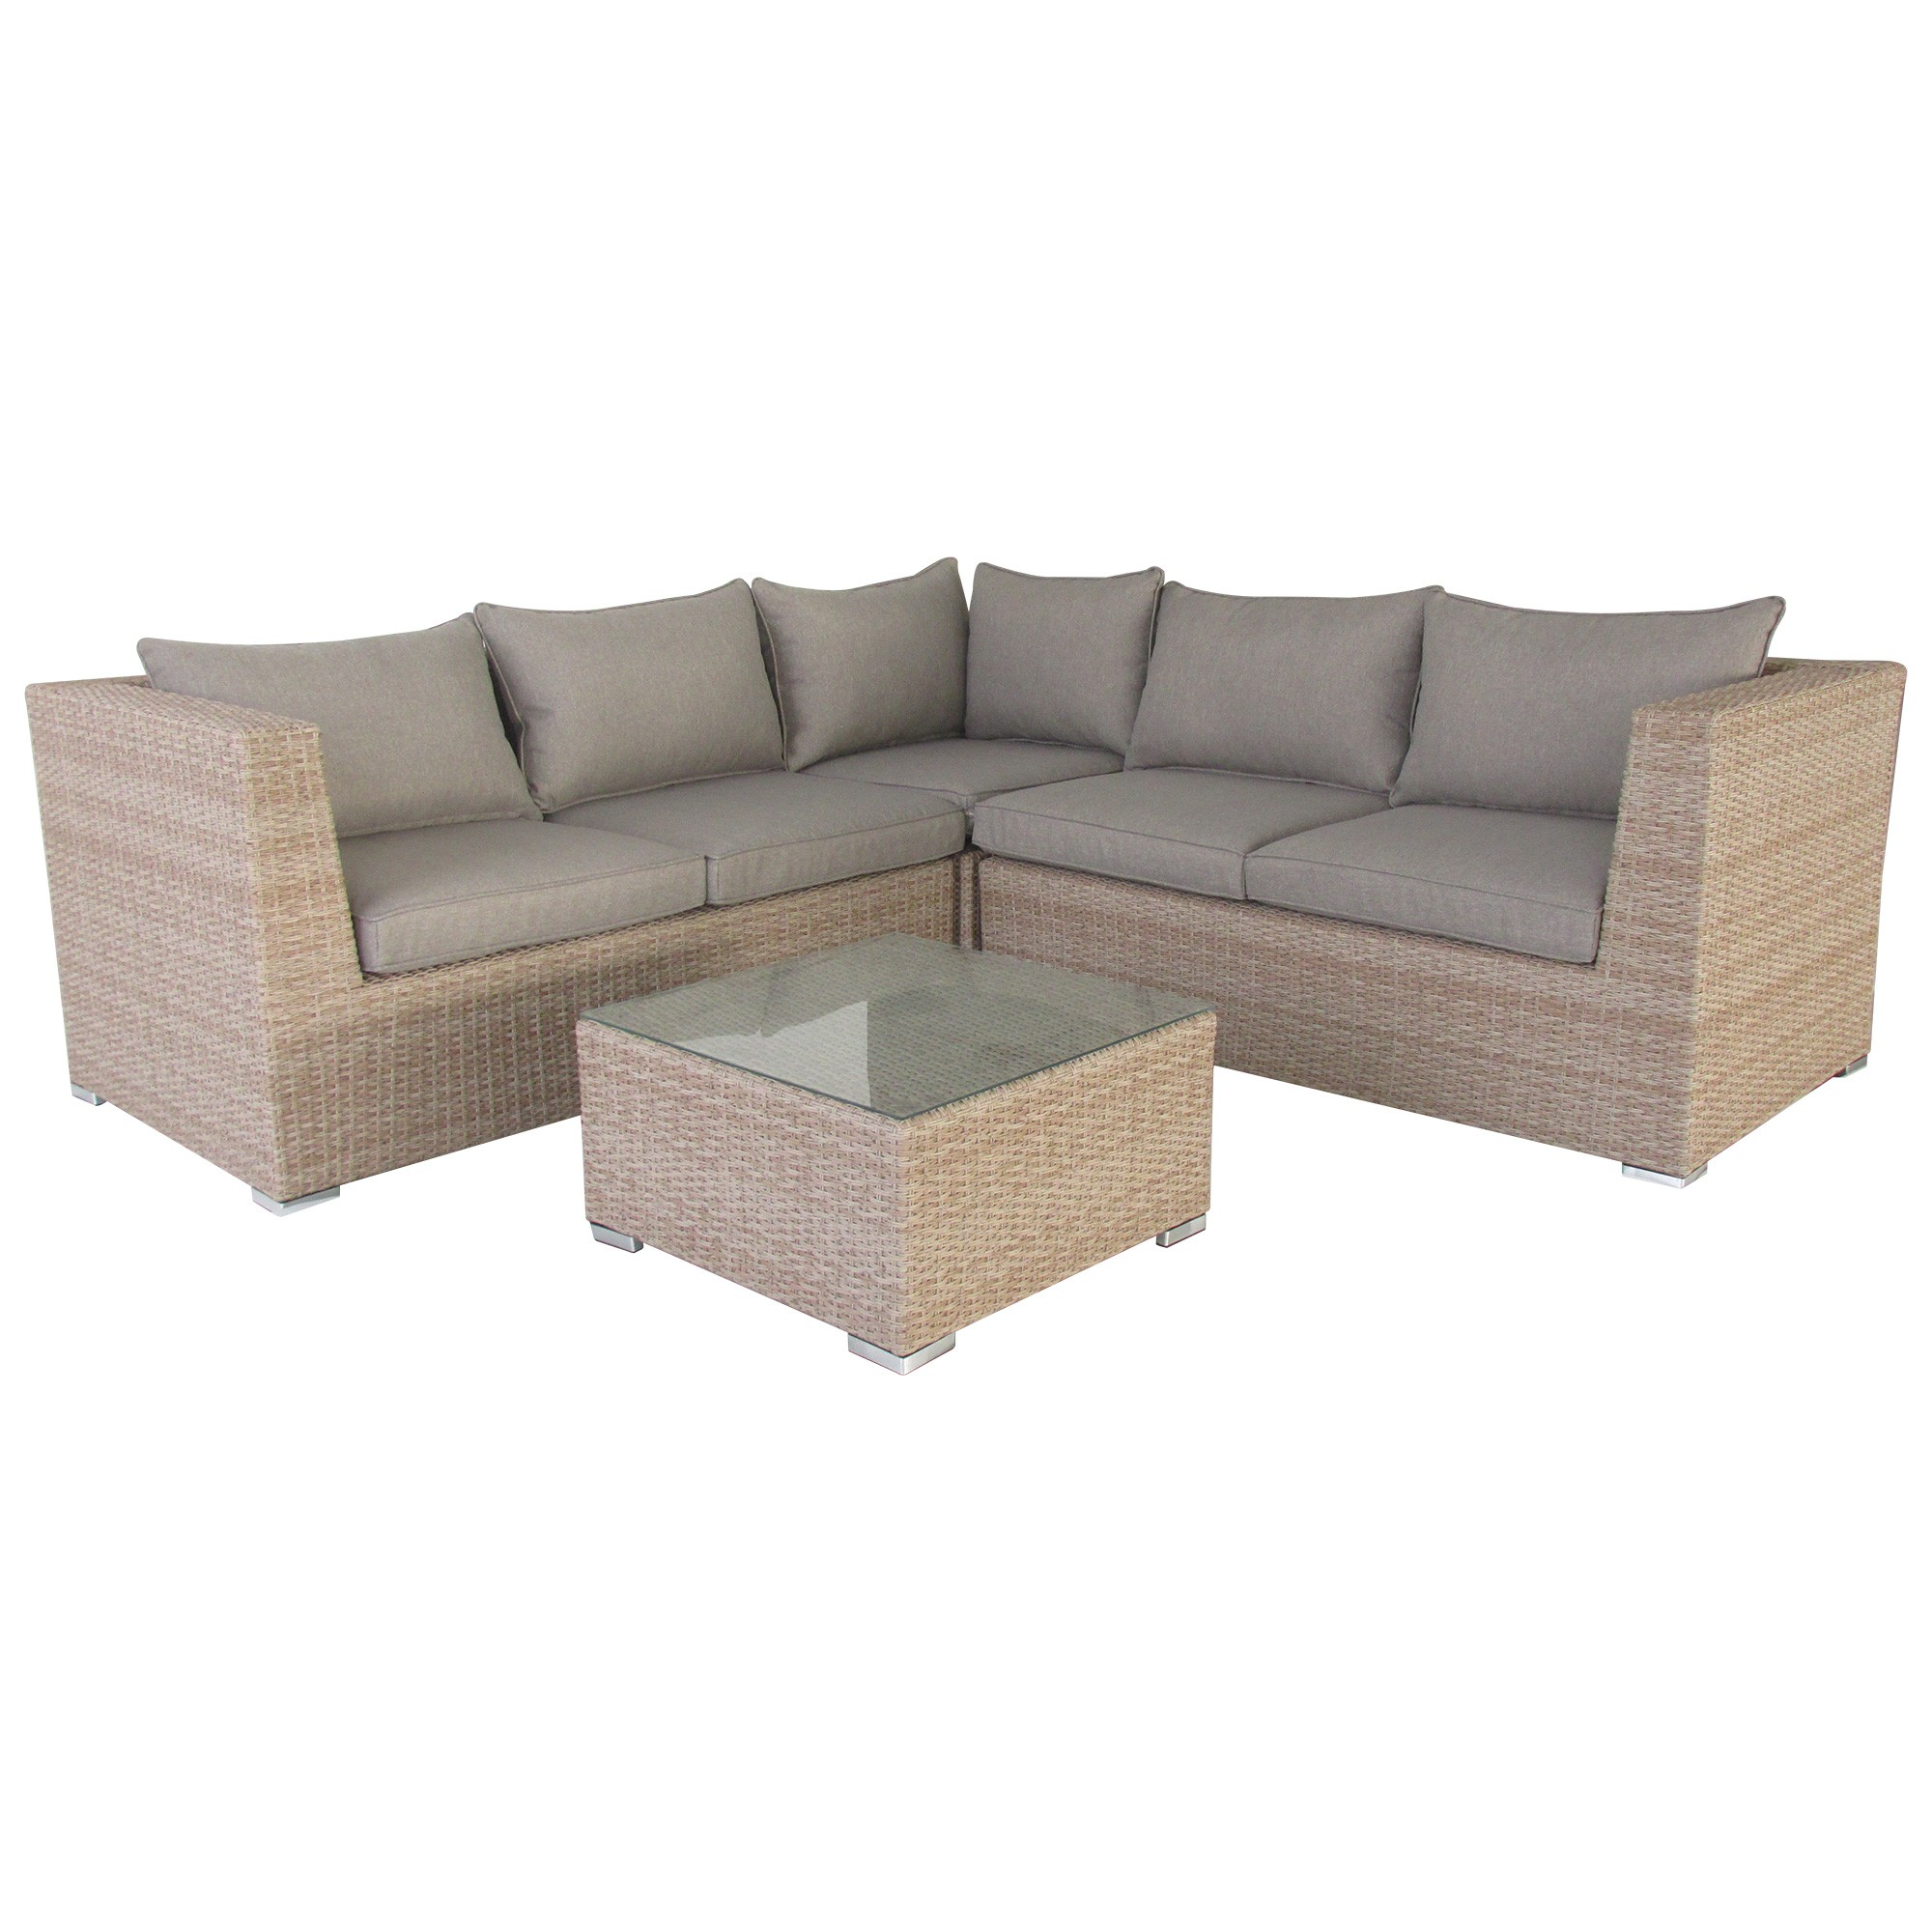 Moluman 4 Piece Outdoor Wicker Corner Lounge Set